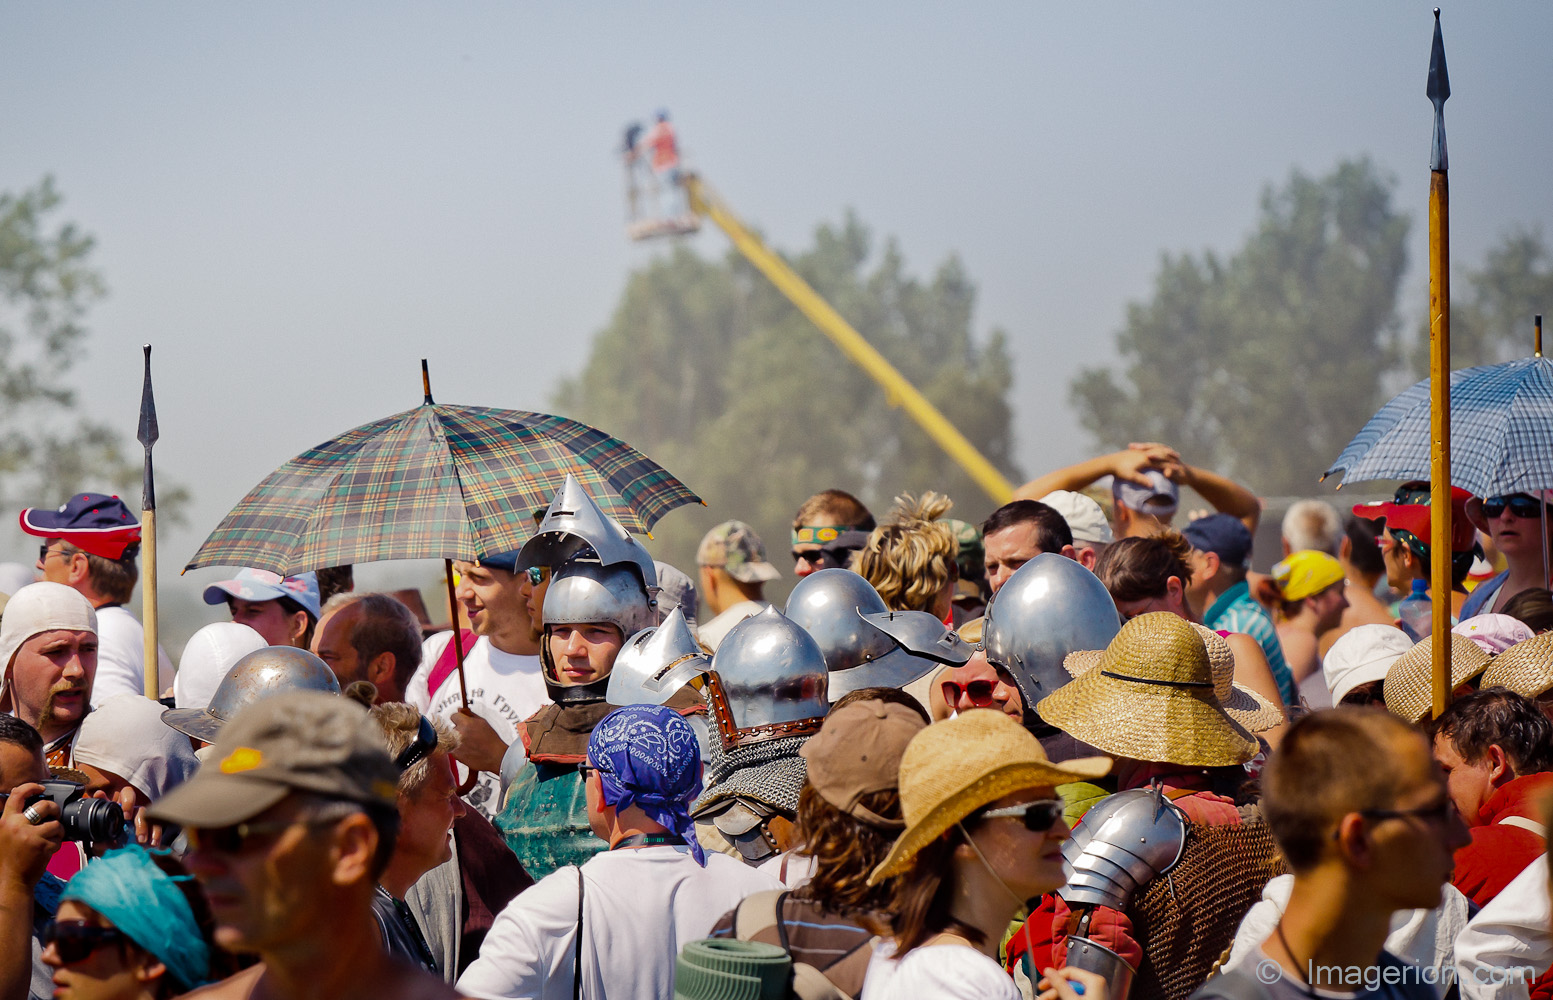 Armored medieval knights among modern crowd of people